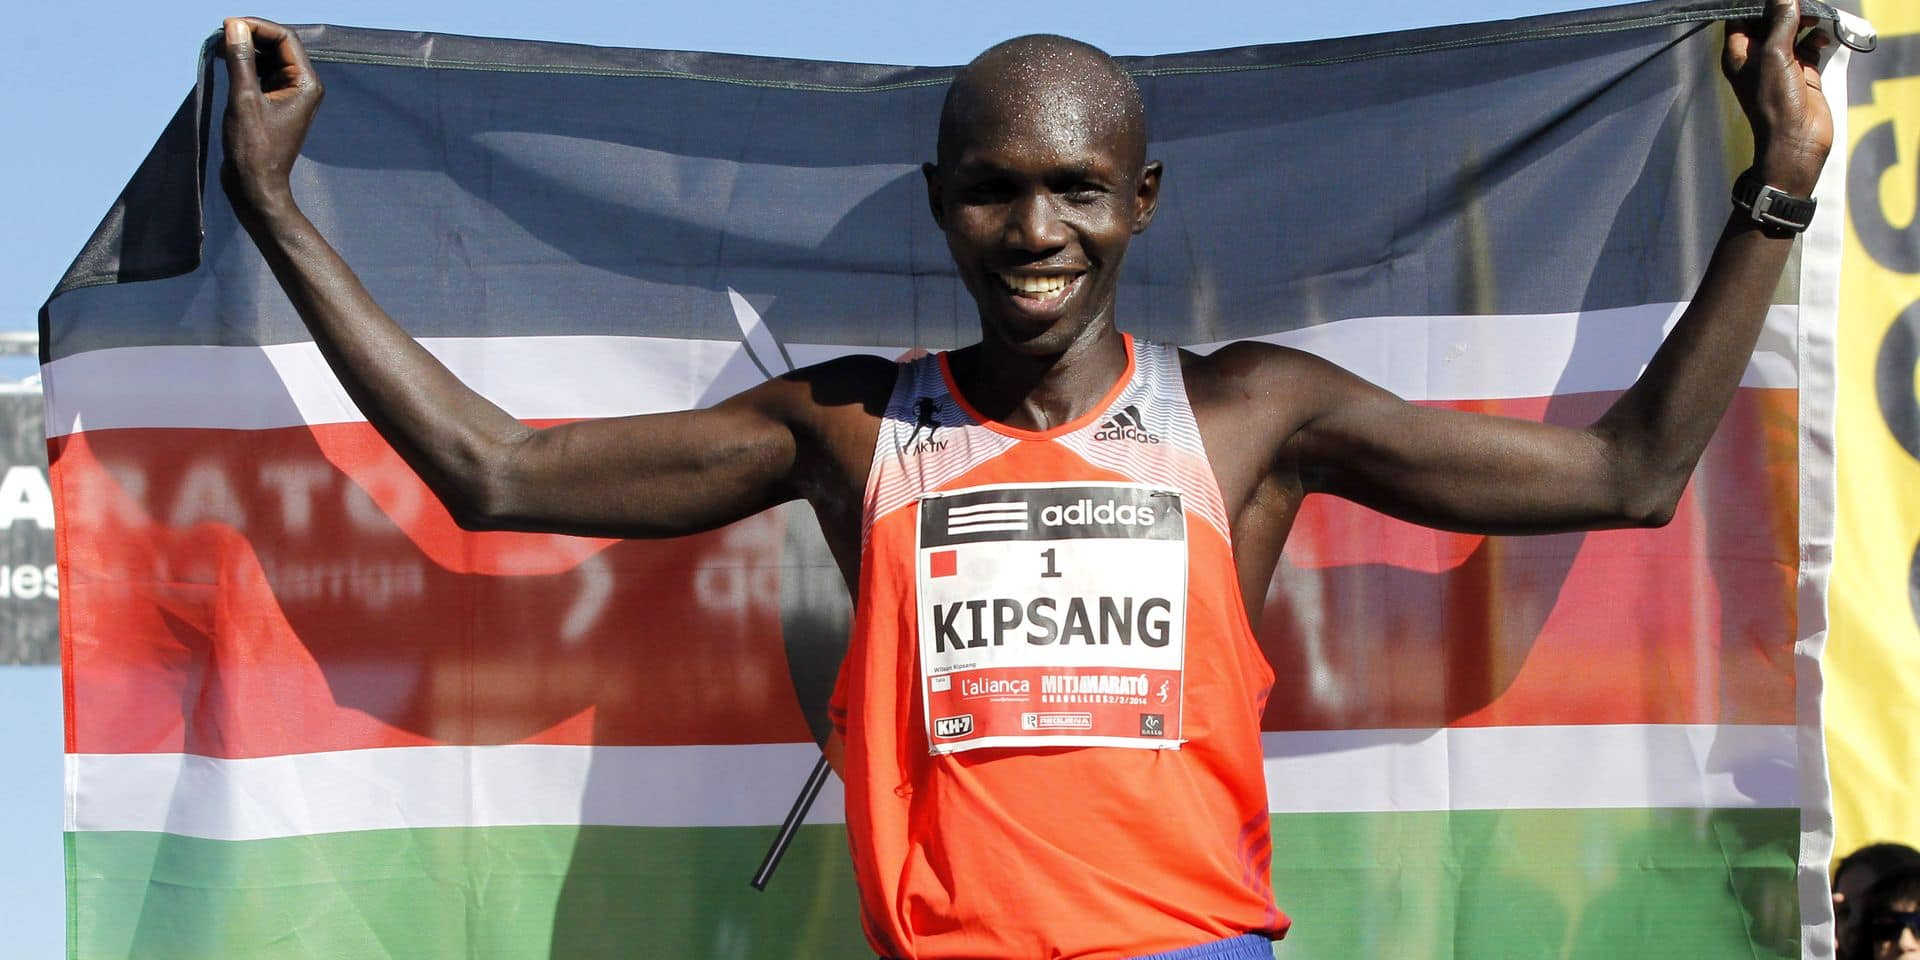 Golazo Kenya et Athletics Kenya entament une large collaboration